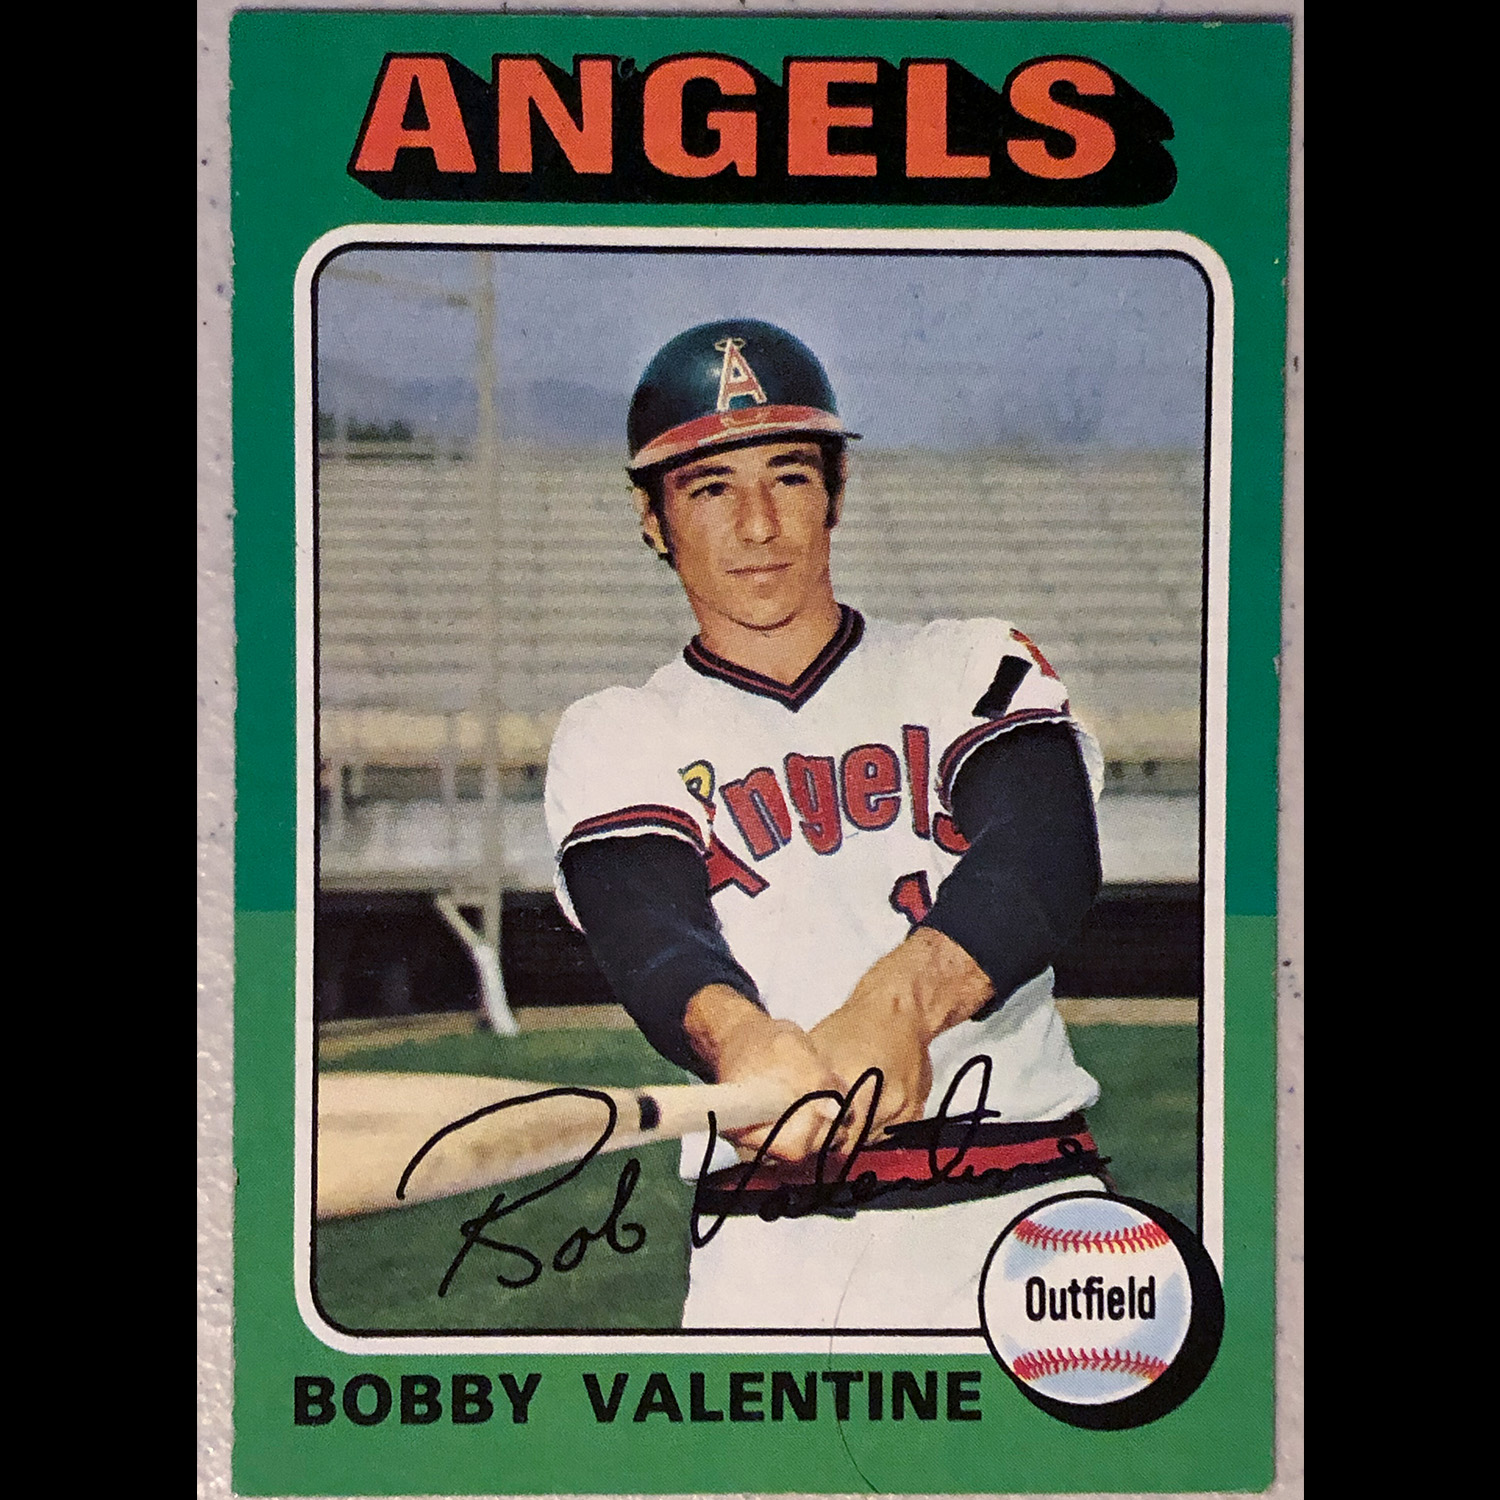 Bobby Valentine - No relation but someone I followed as a kid because of his name.  Pretty sure this photo is from Spring Training in Palm Springs, CA.  One thing I was always aware of was the stadiums where the portraits were take.